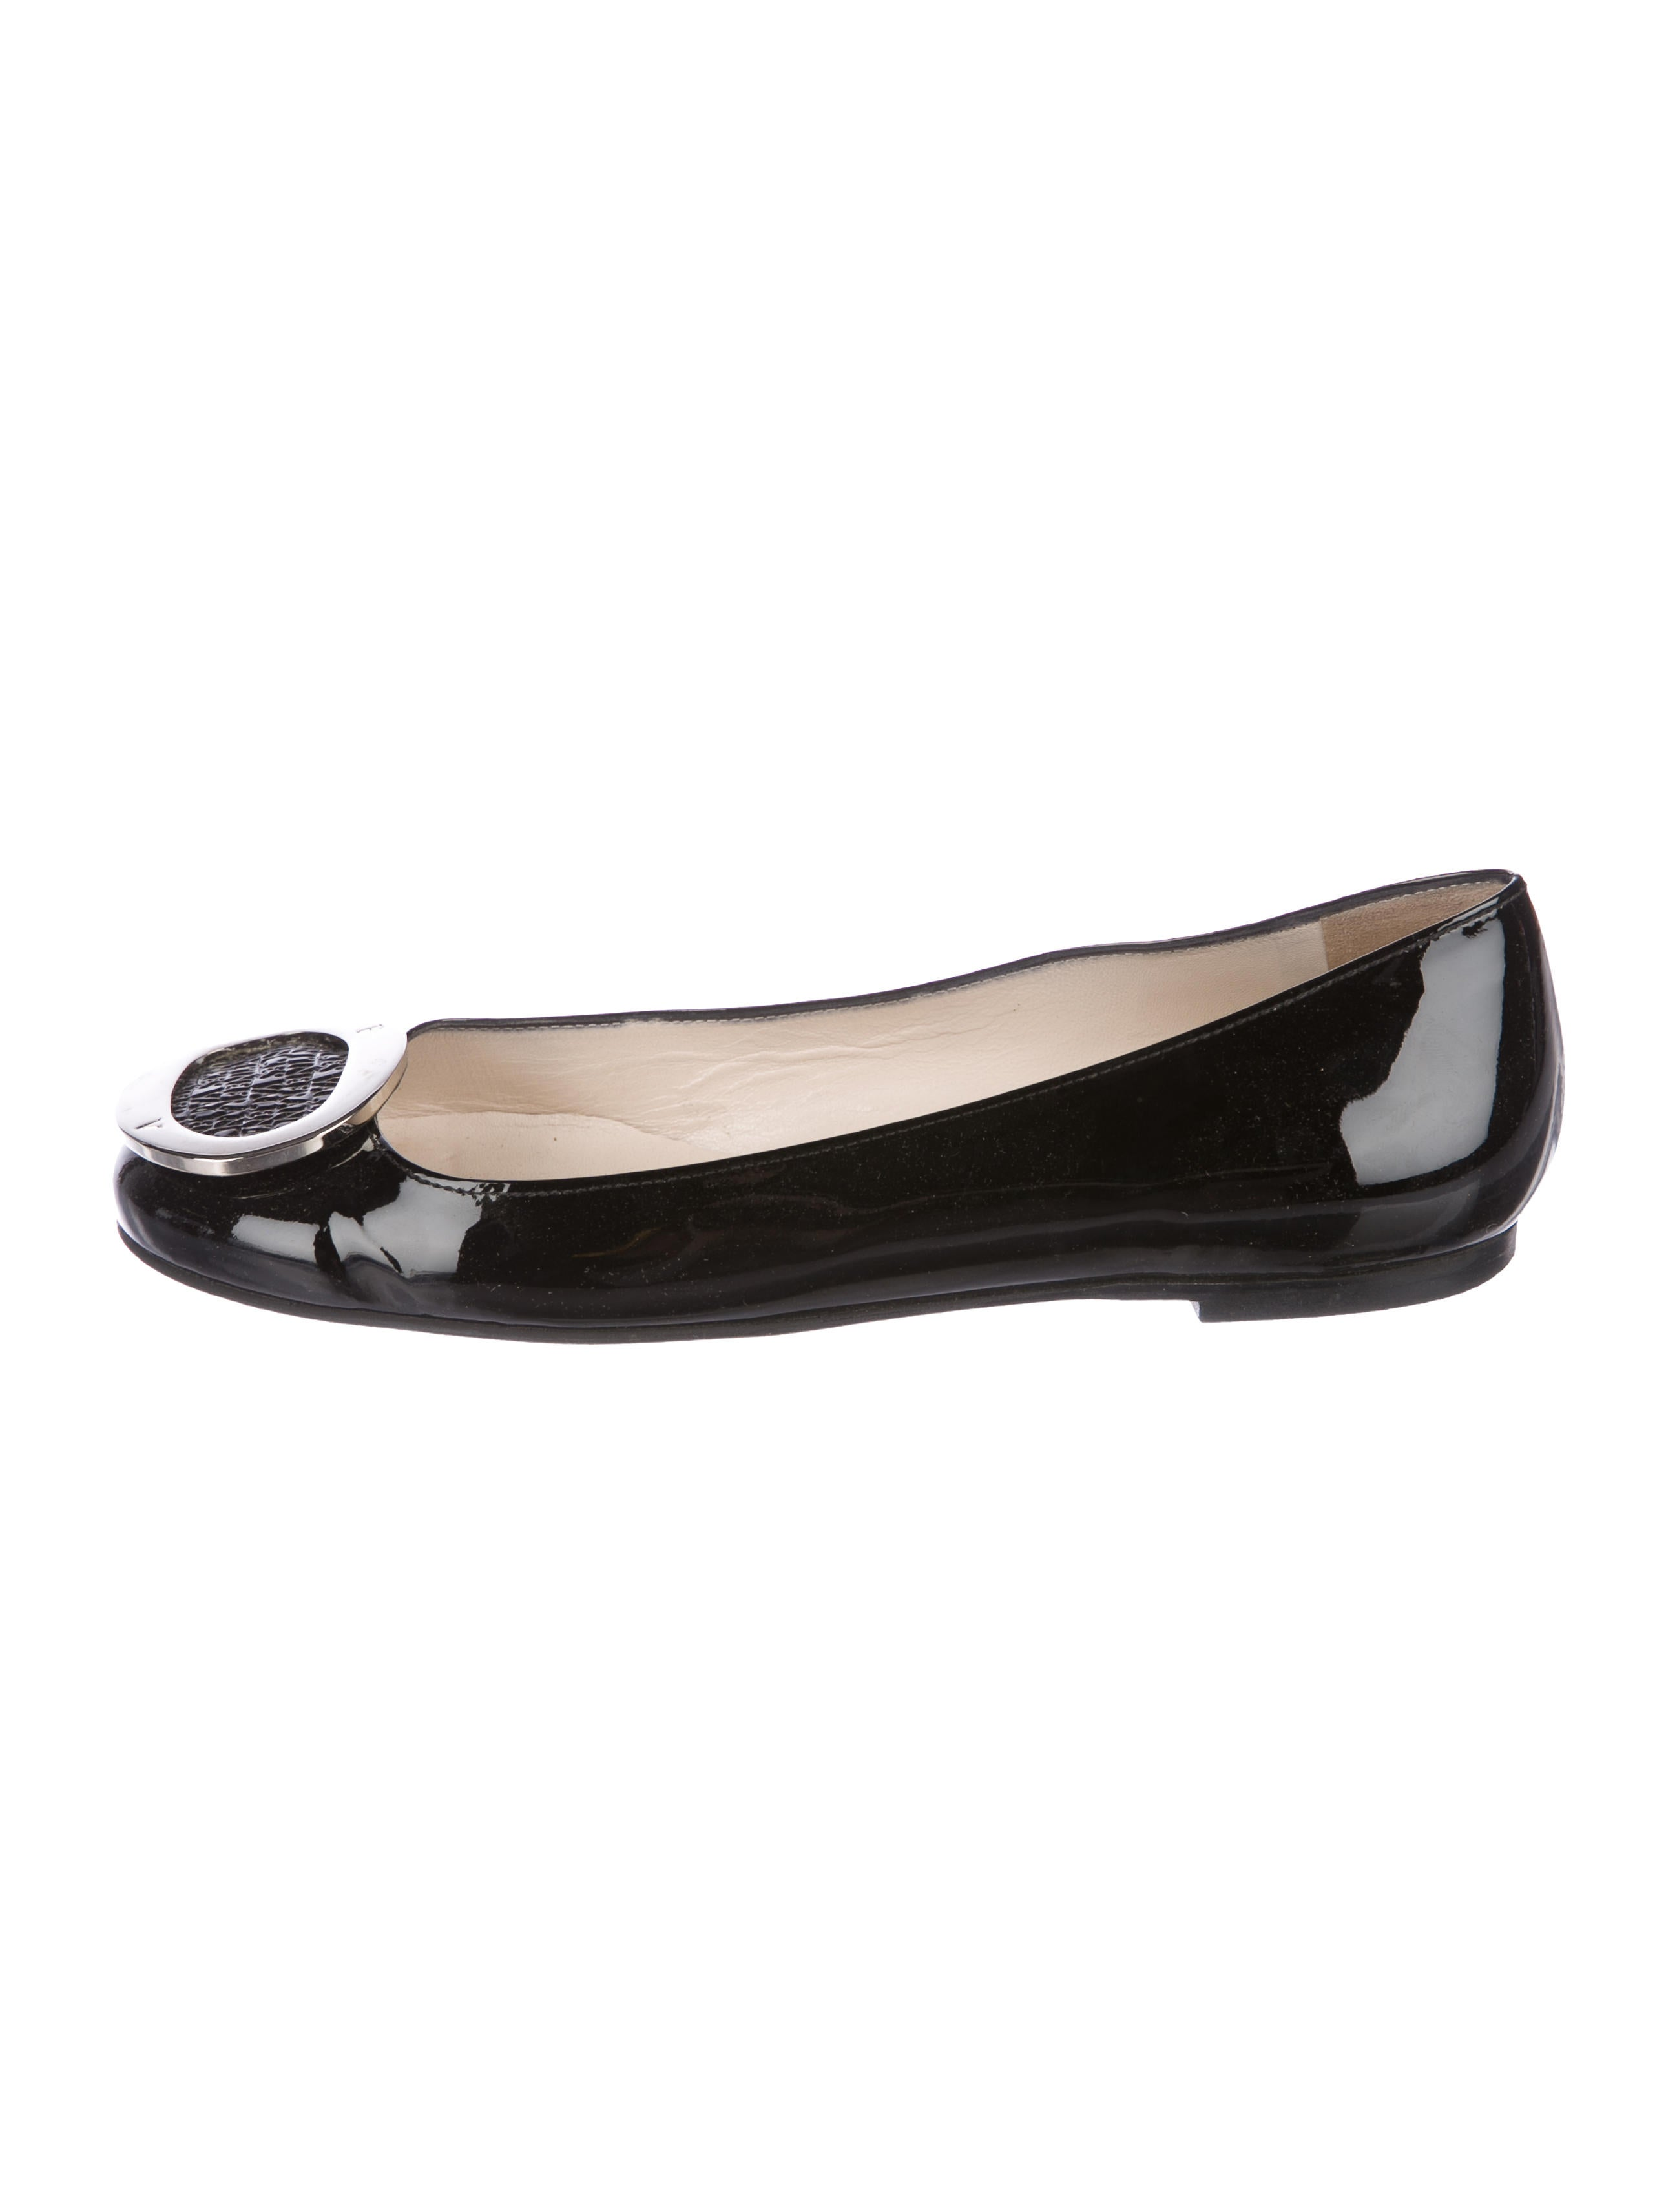 0f630394374ad6 Frances Valentine Patent Leather Buckle Flats - Shoes - WFRAV20088 ...